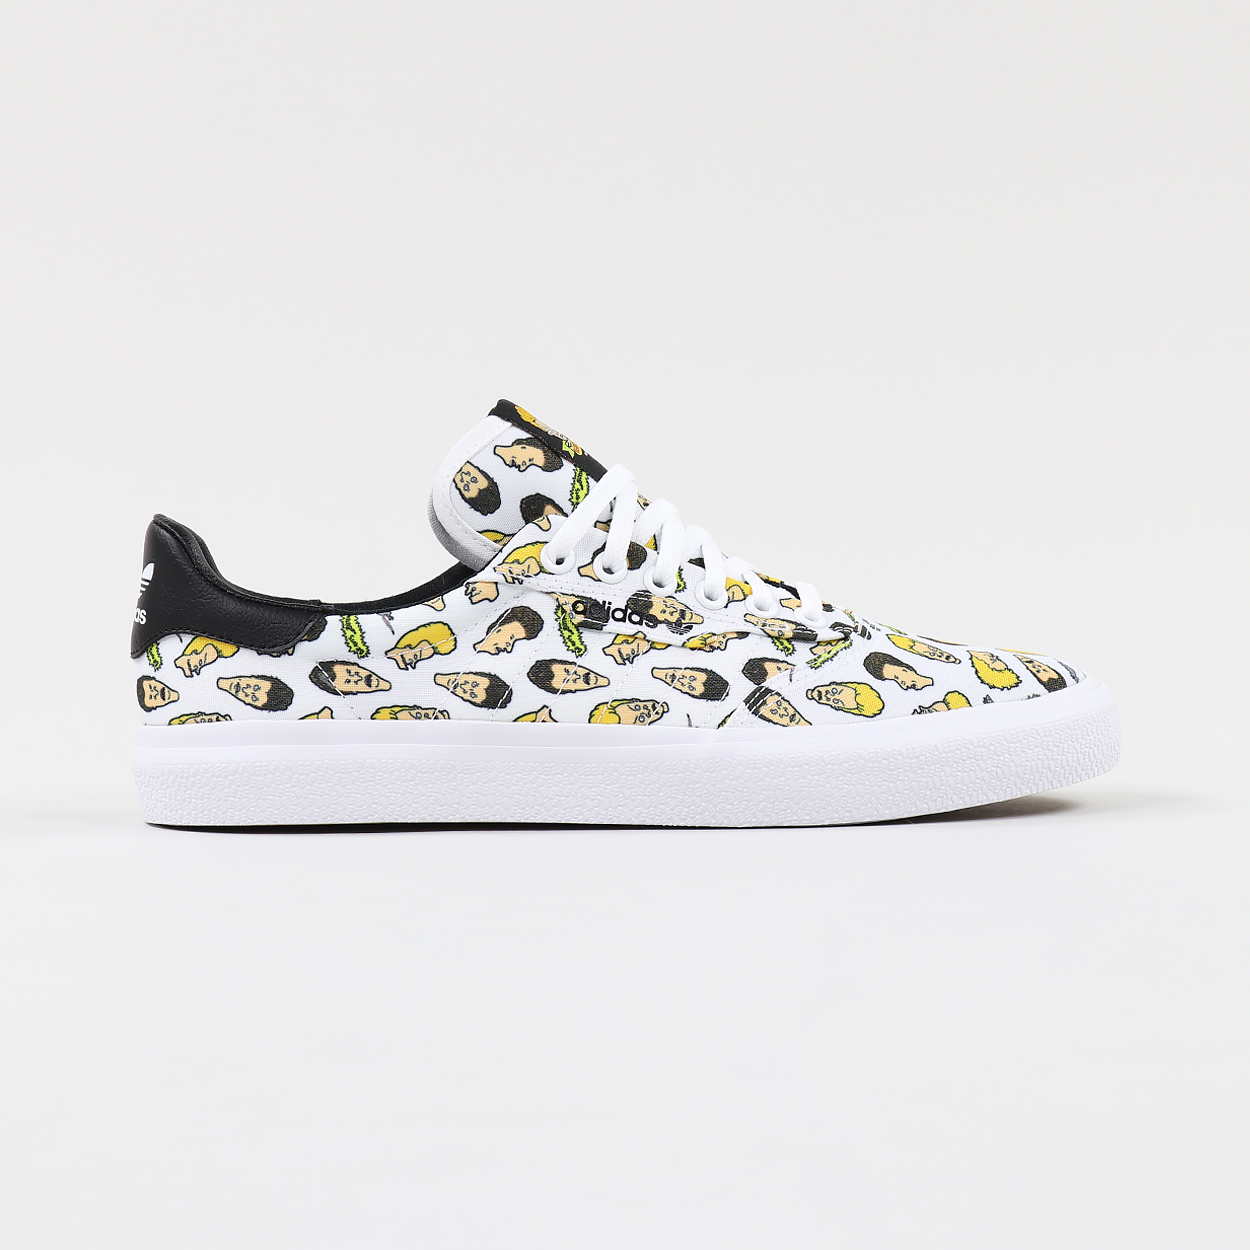 low priced 0f978 47d17 Adidas Skate x Beavis and Butt-Head 3MC Graphic Shoes White ...